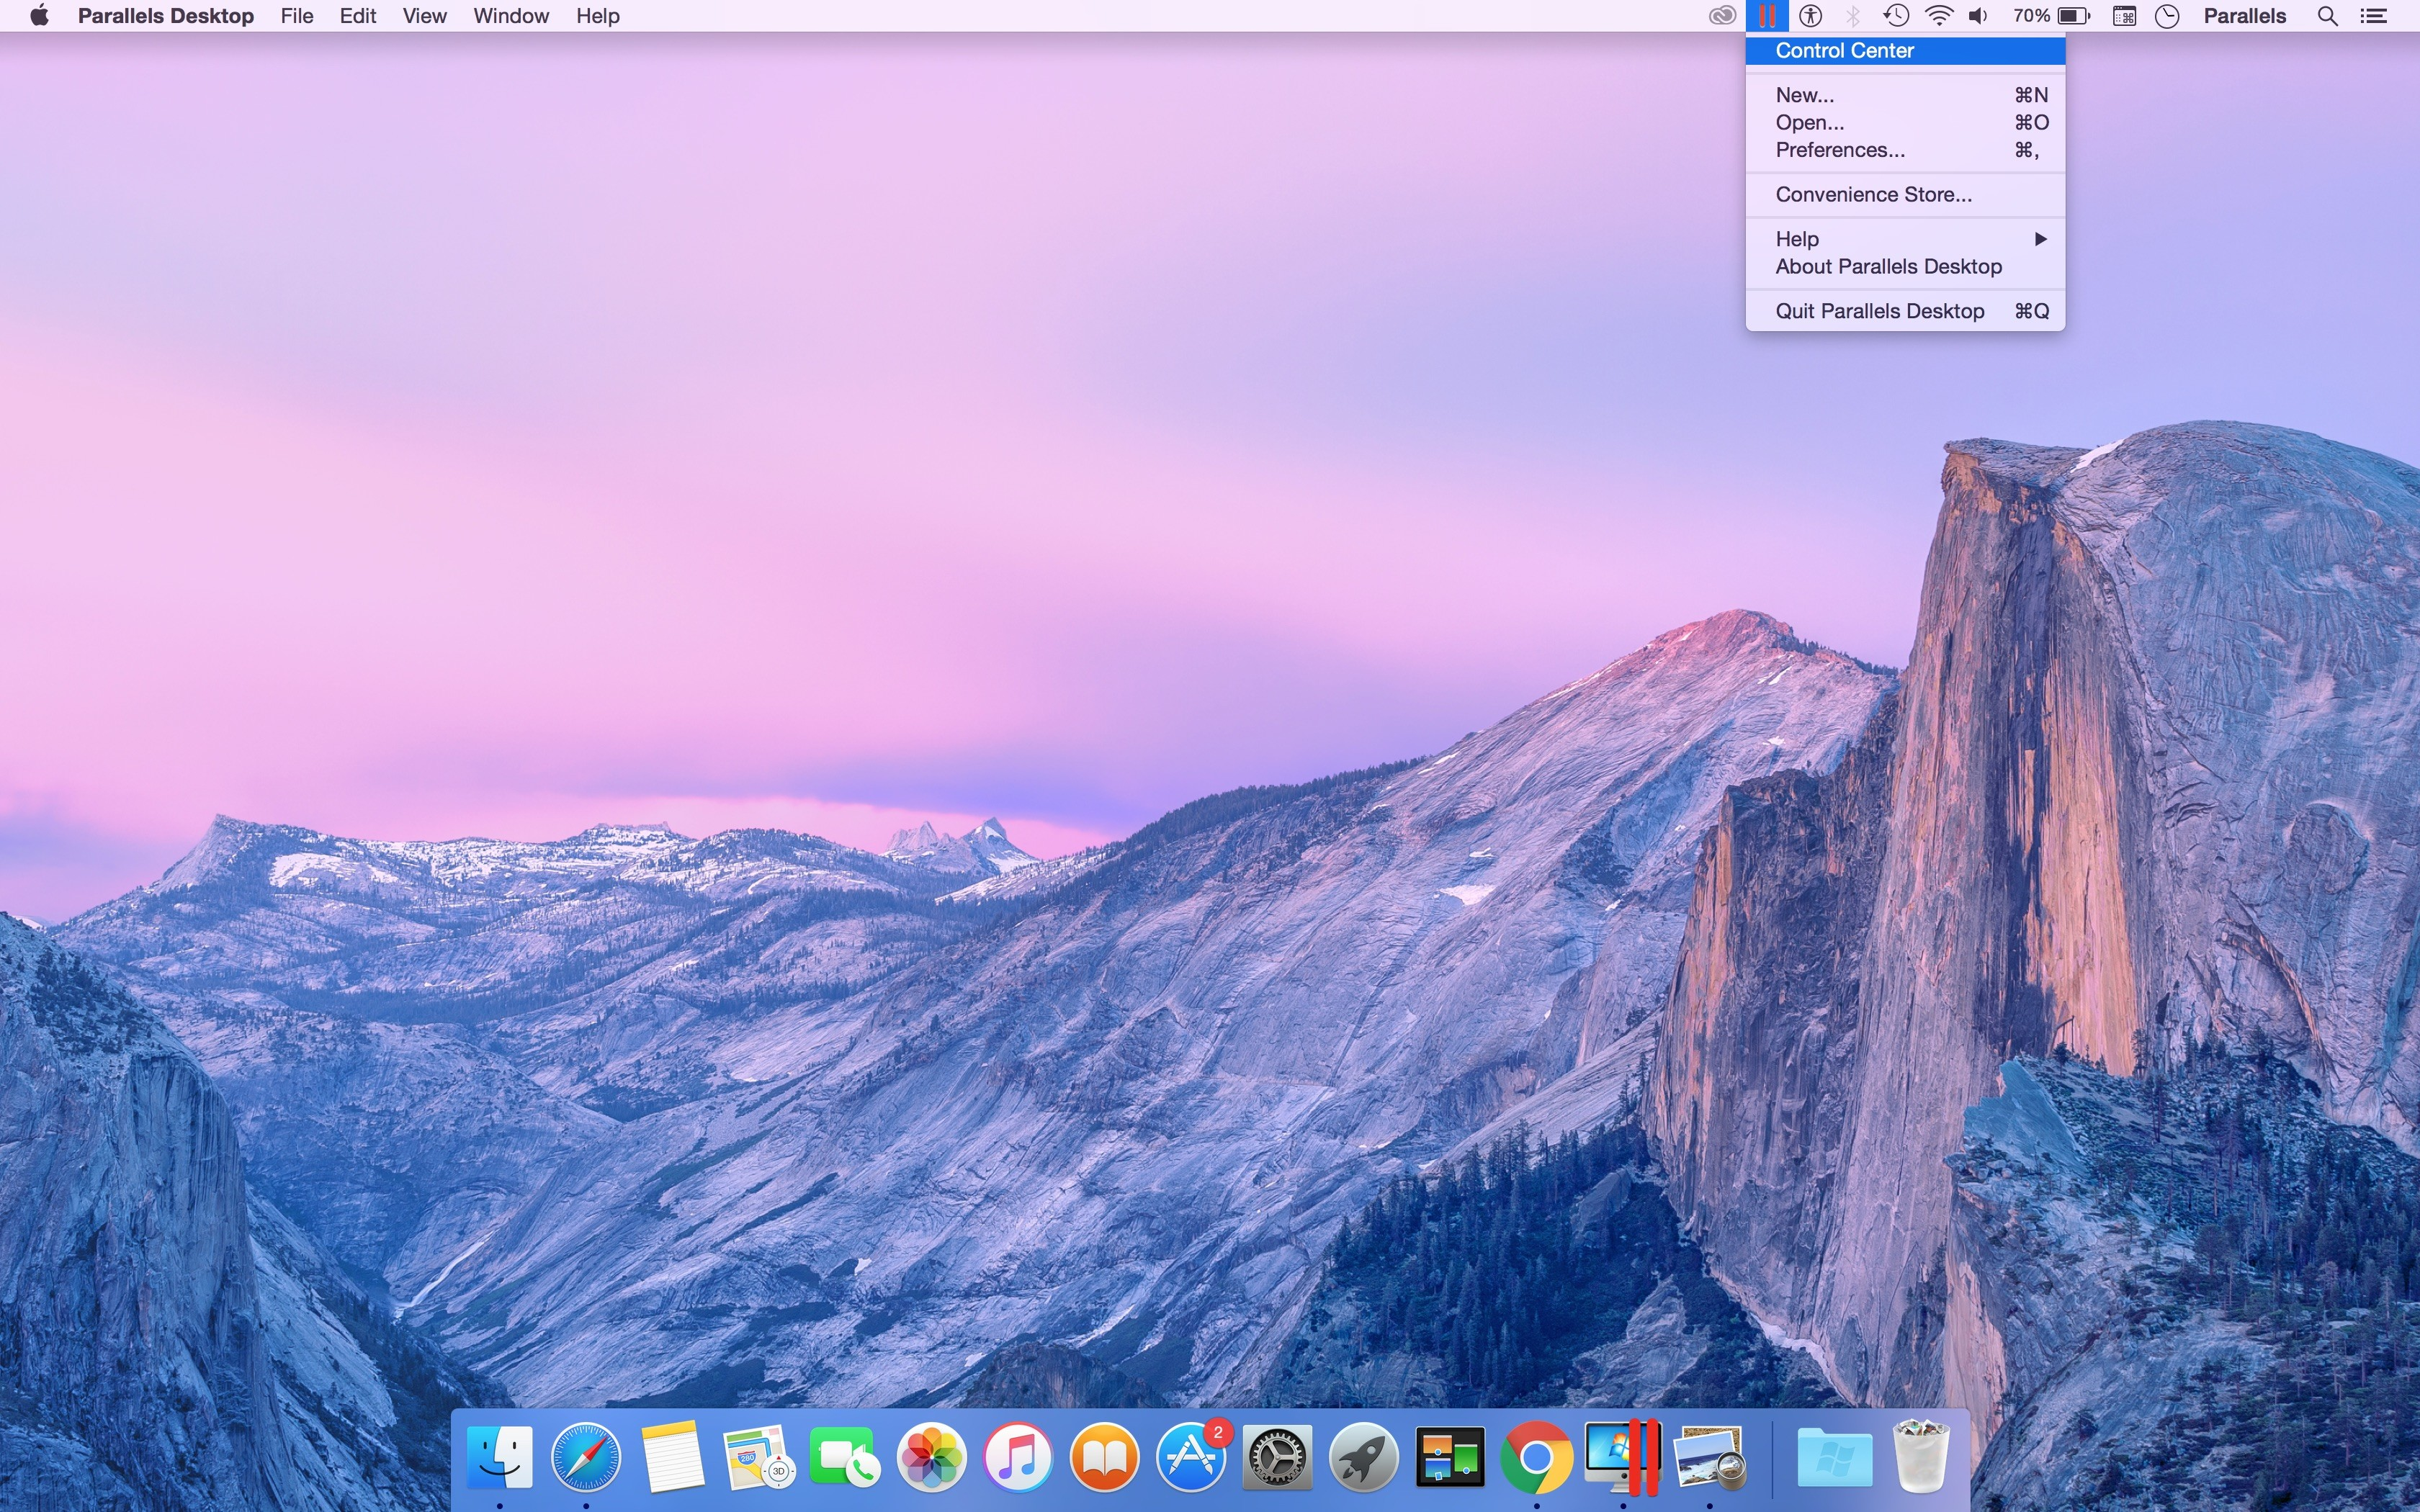 Res: 3360x2100, Windows from boot camp to new mac